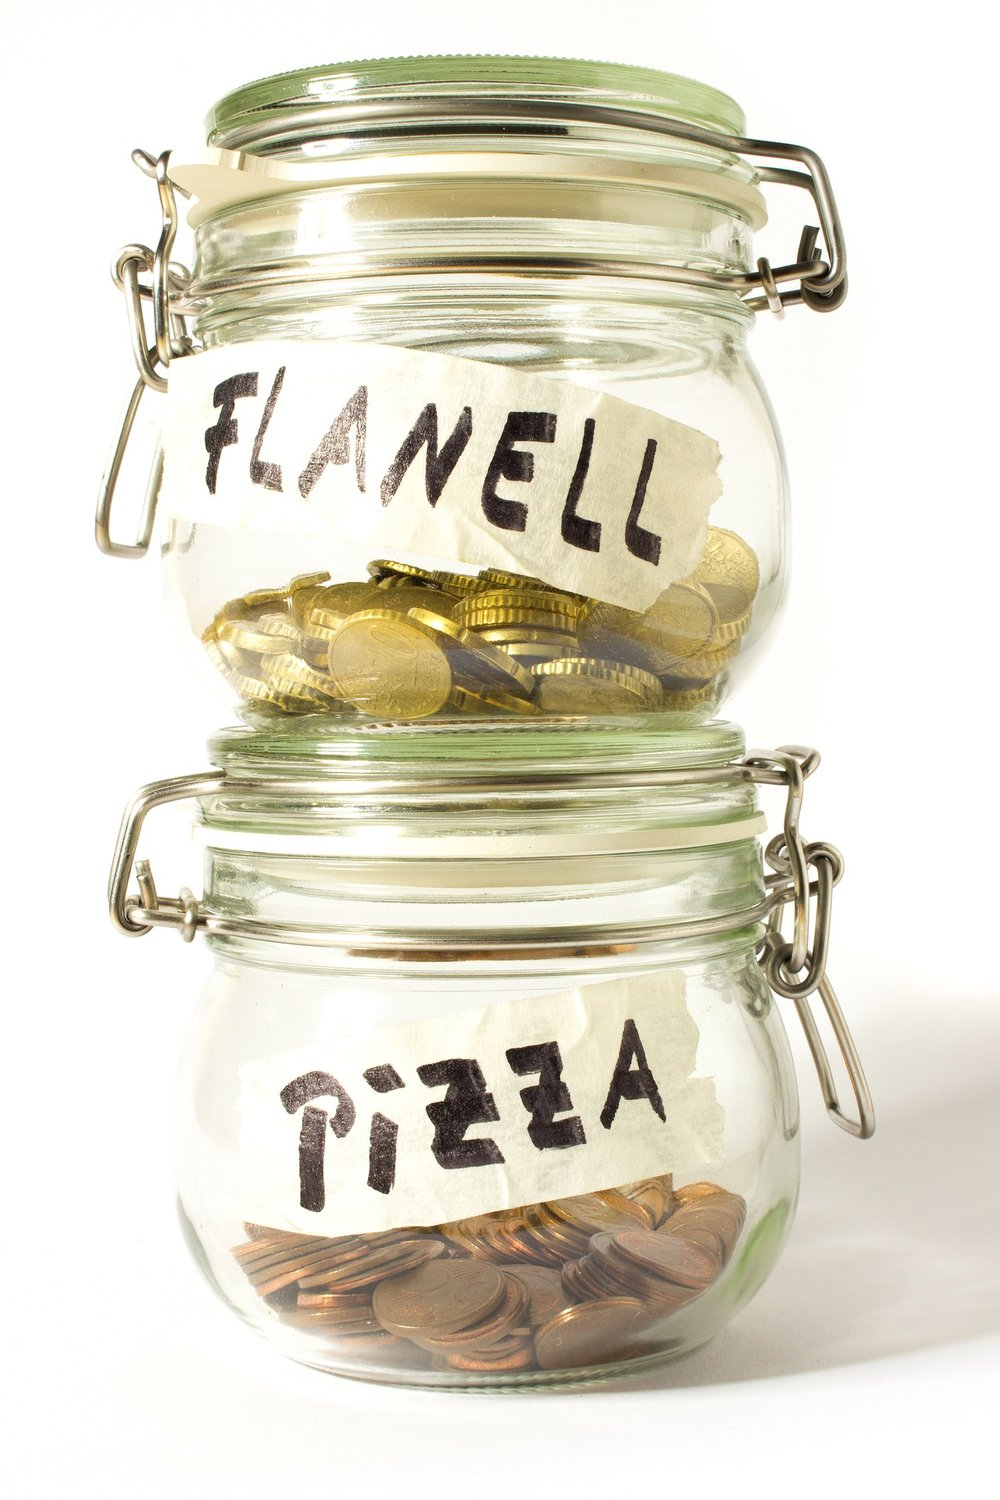 money jars mental accounting flannel pizza